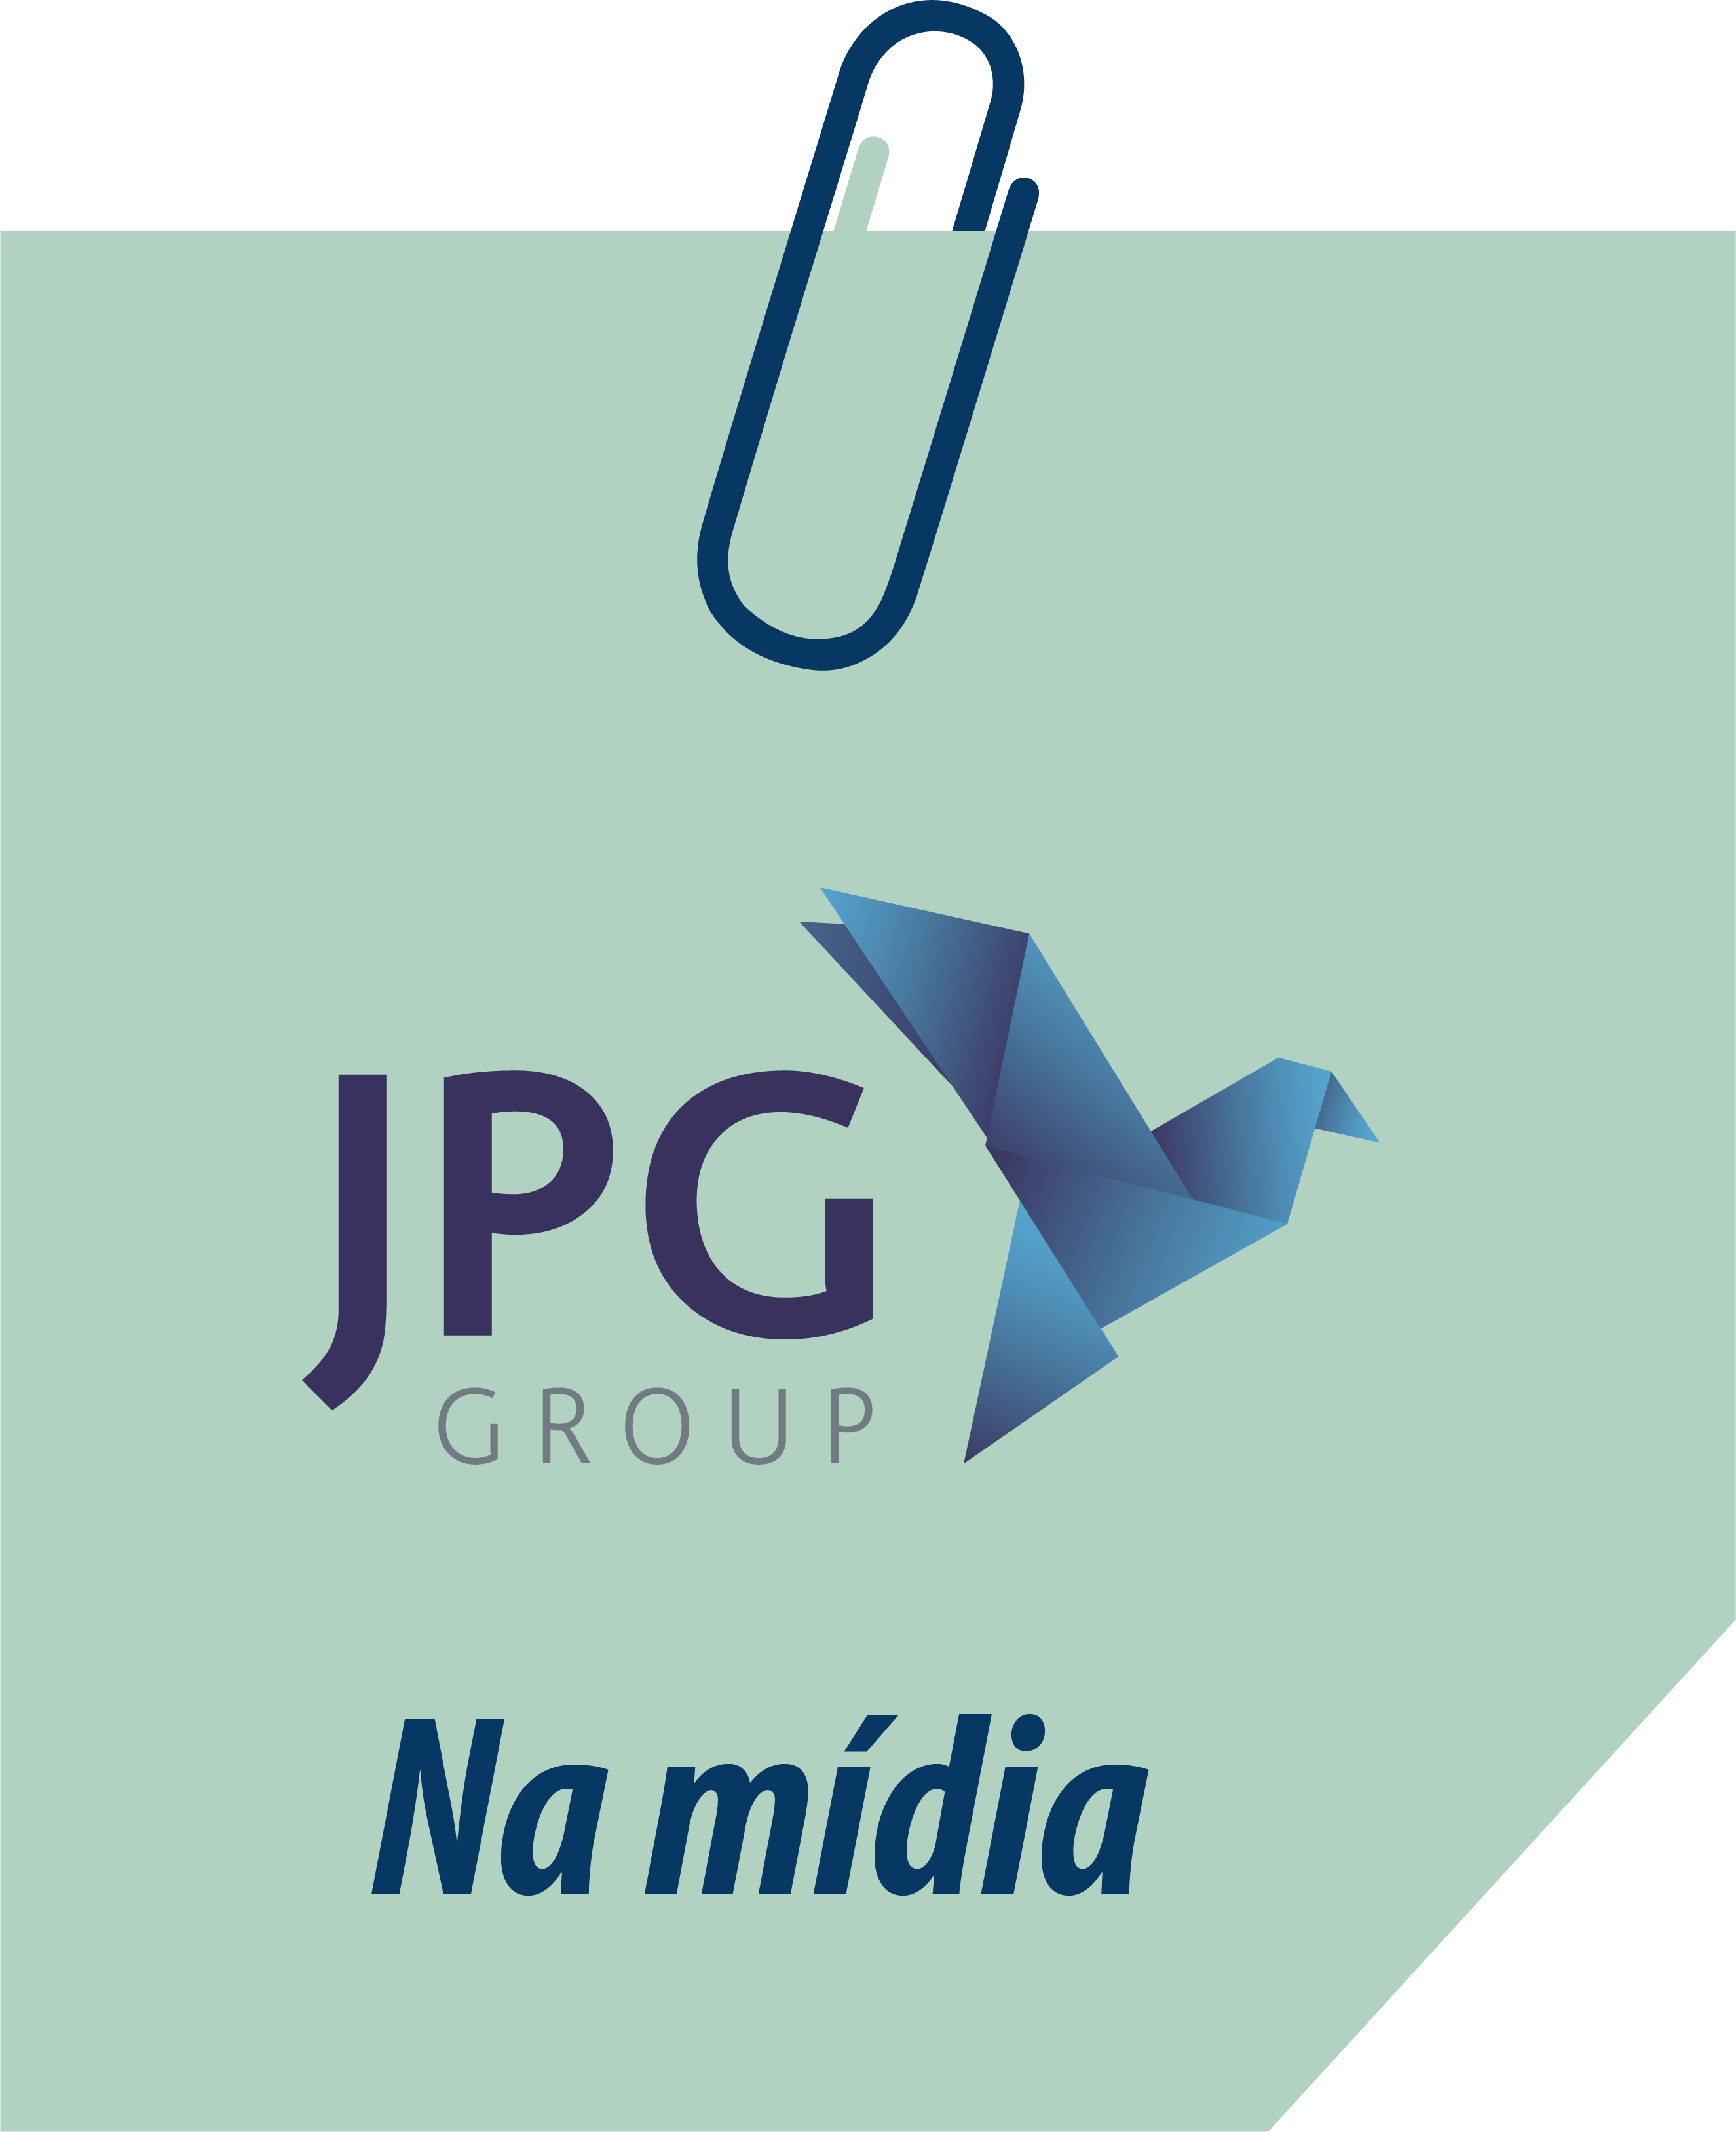 JPG Group na Mídia